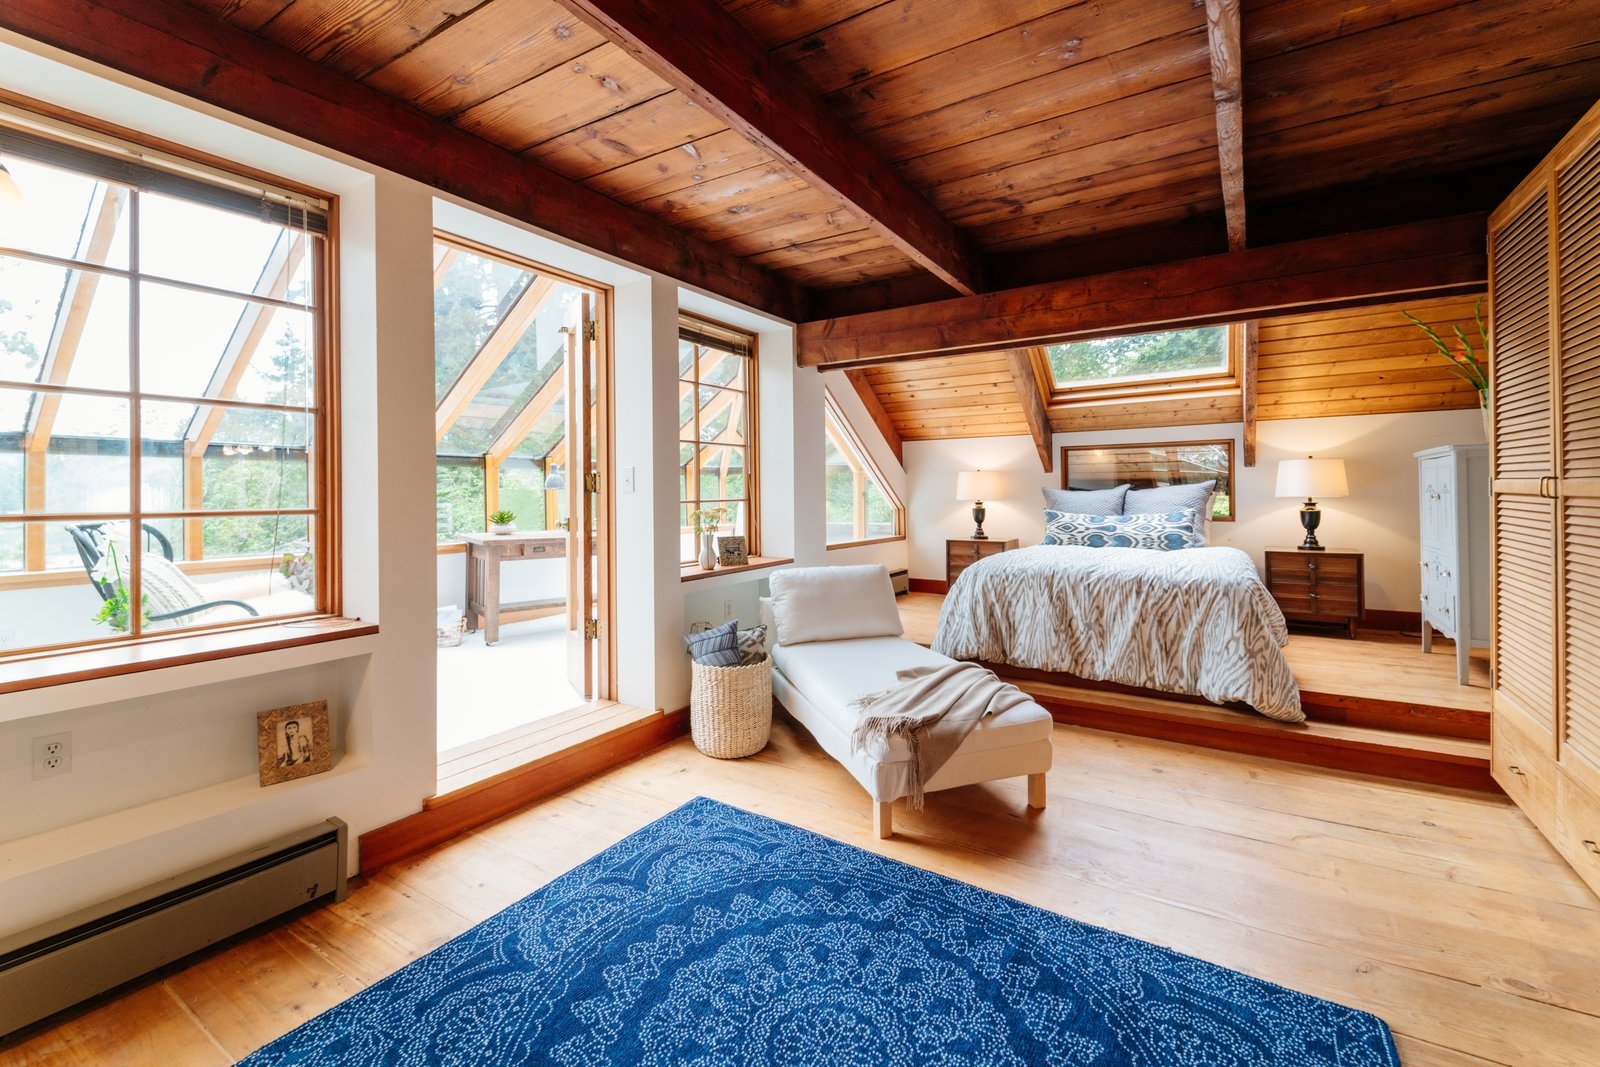 Photo 11 of 19 in Repurposed Ship Materials and 100-Year-Old Beams Make Up This Tree House-Like Home